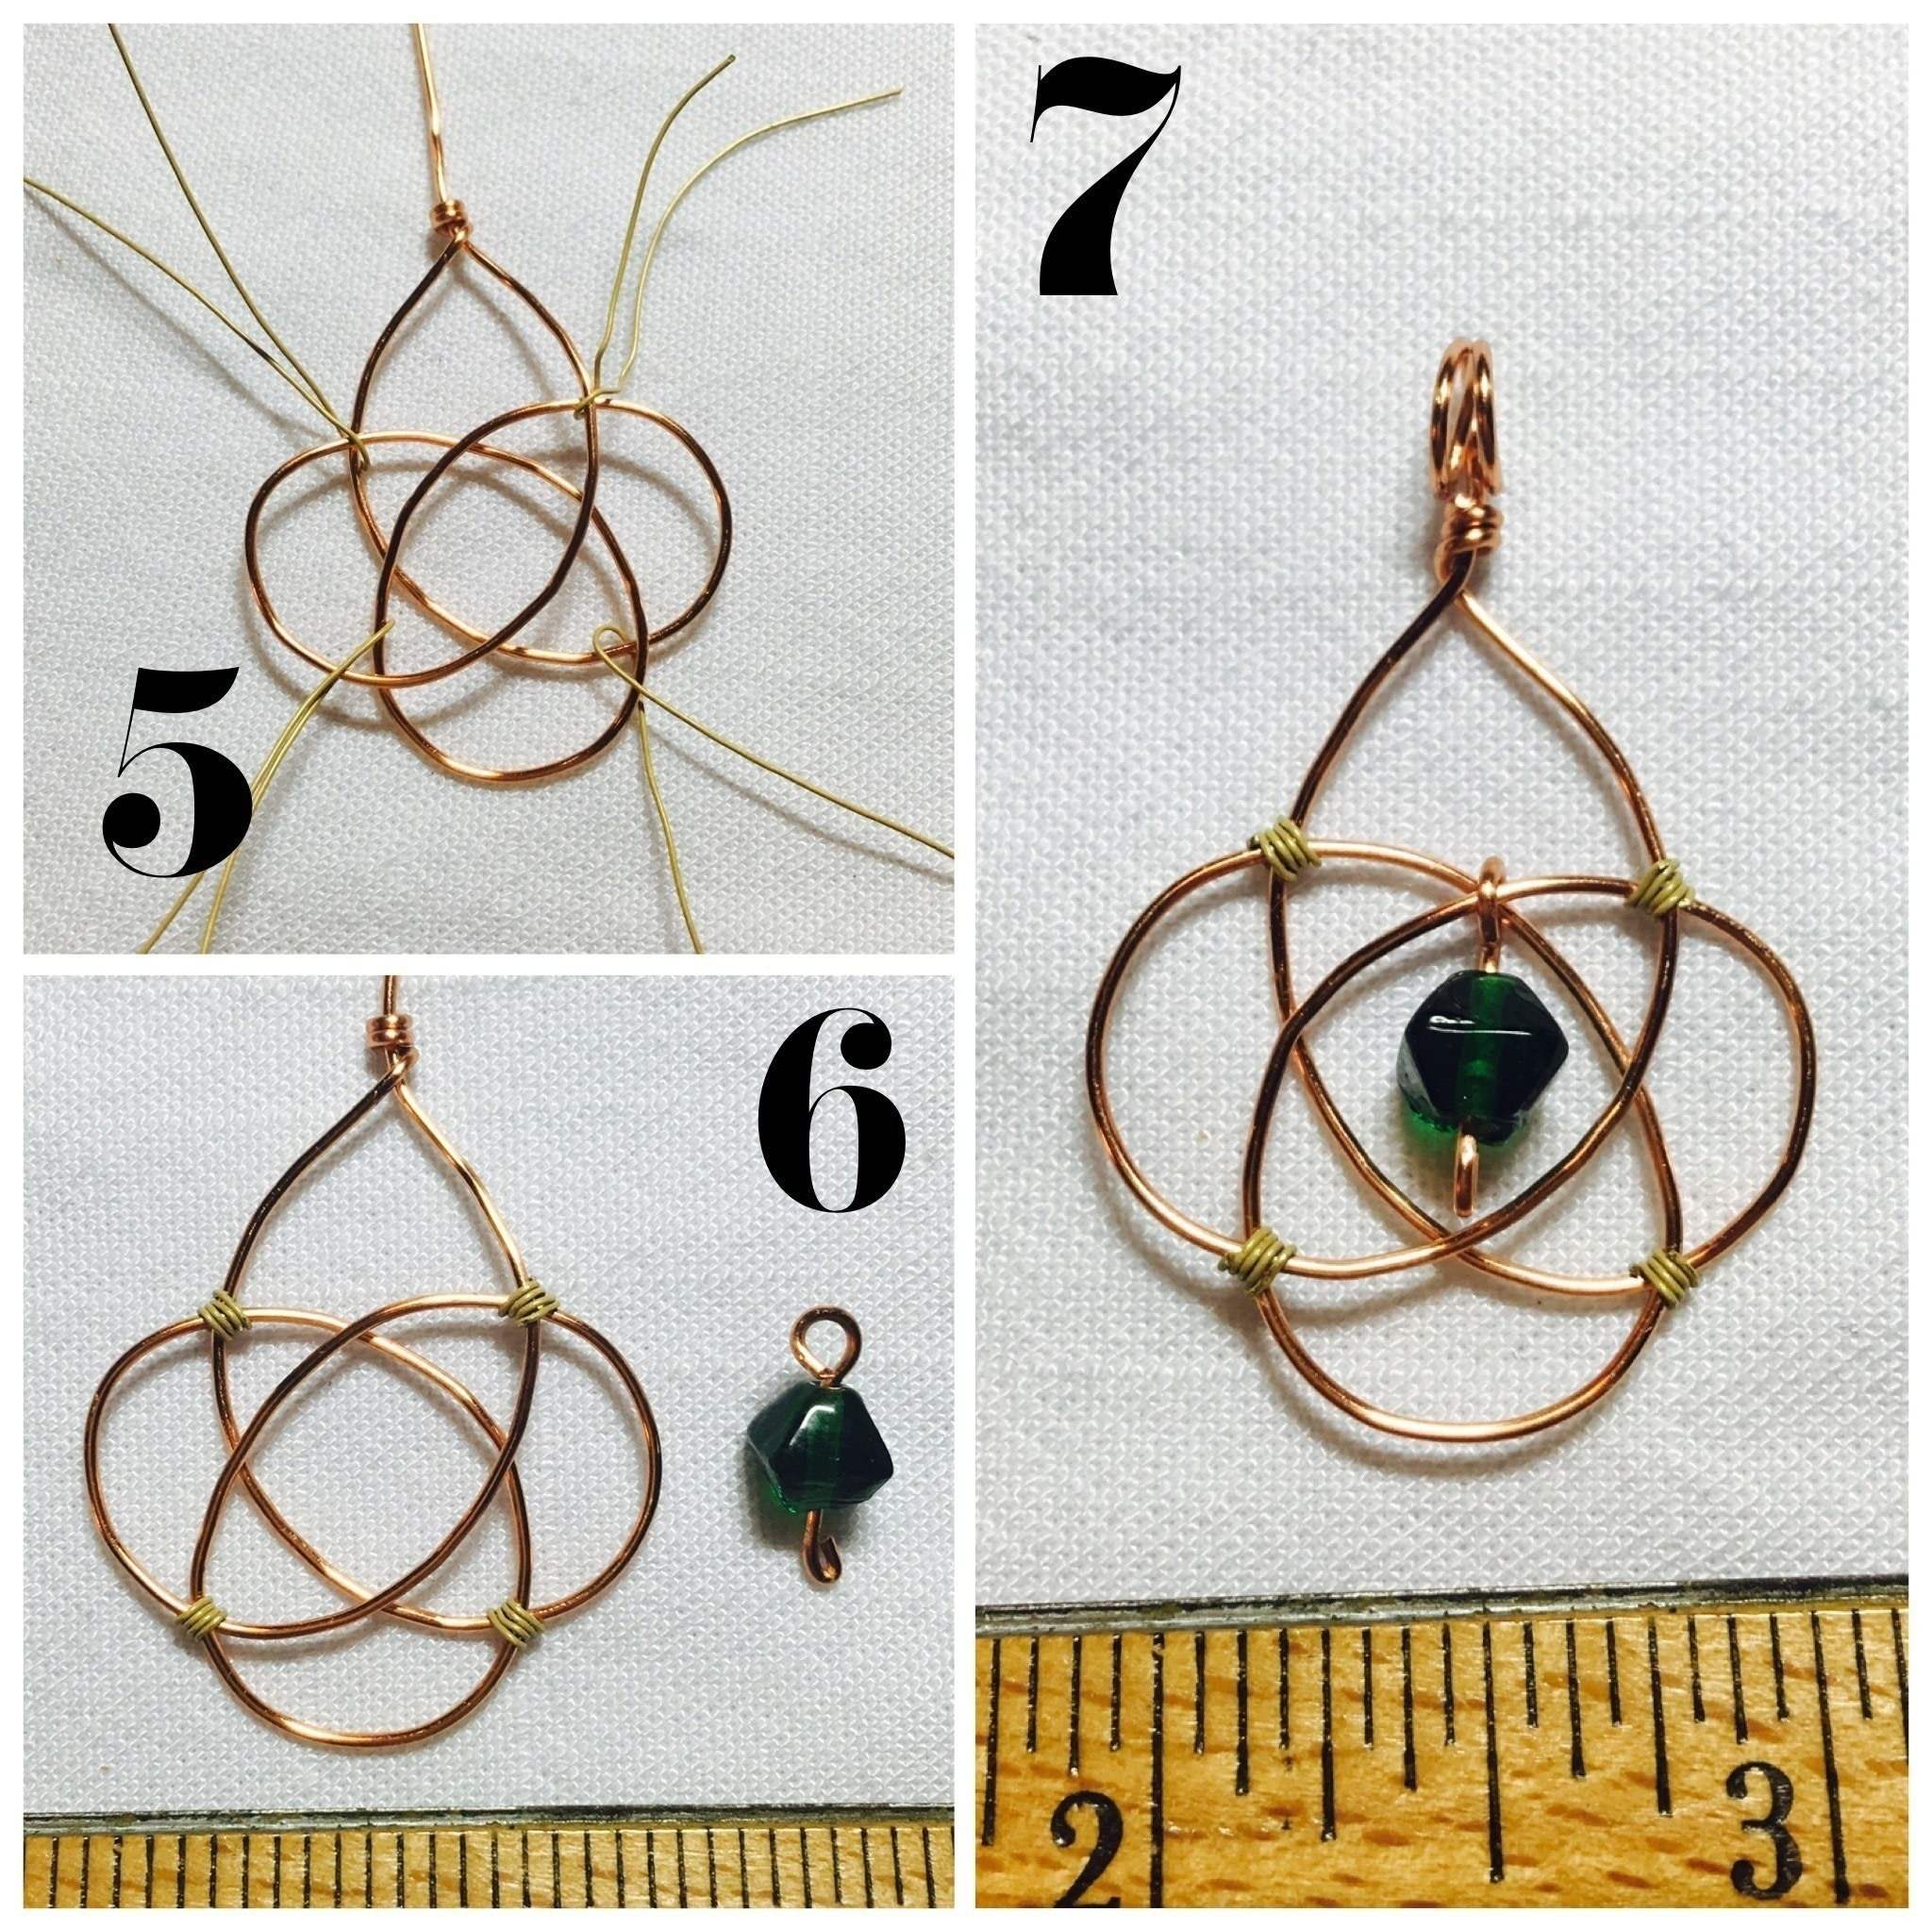 Celtic Knot Pendant · How To Make A Pendant Necklace · Jewelry on ...